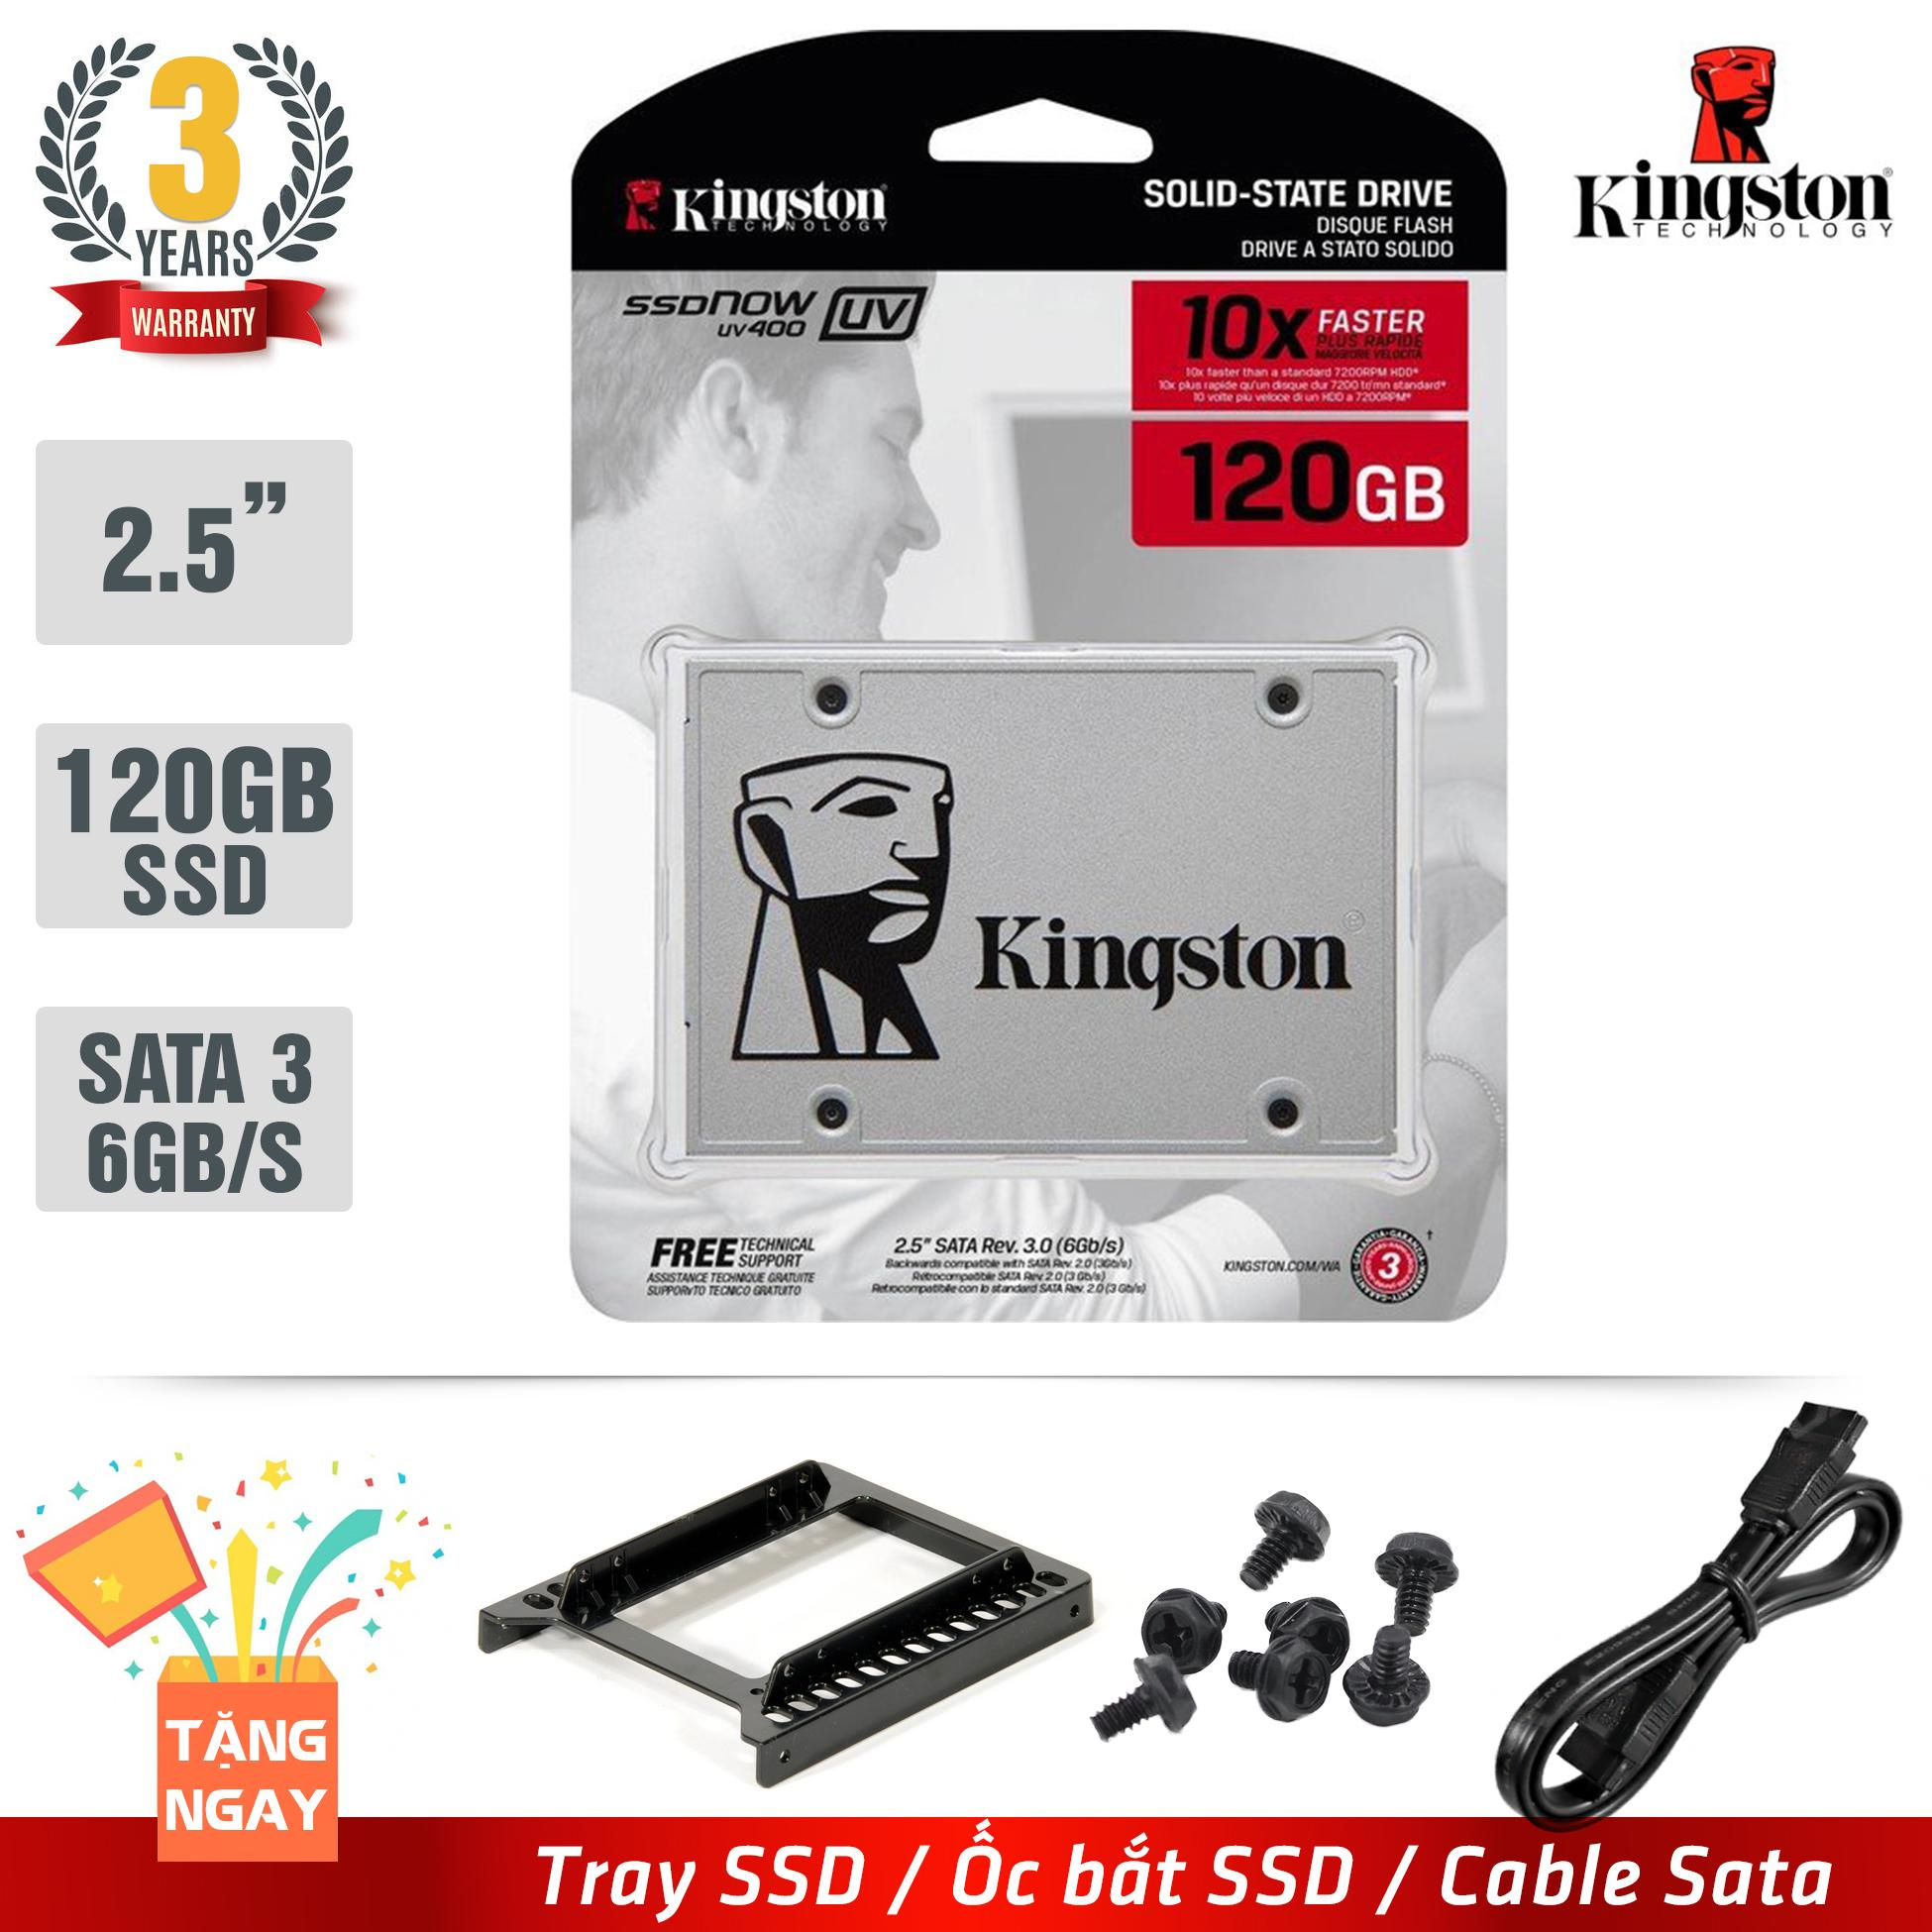 Cng Ssd Kingston Uv400 120gb Sata 3 Tng Tray C Bt Iii Gii Thiu Dy